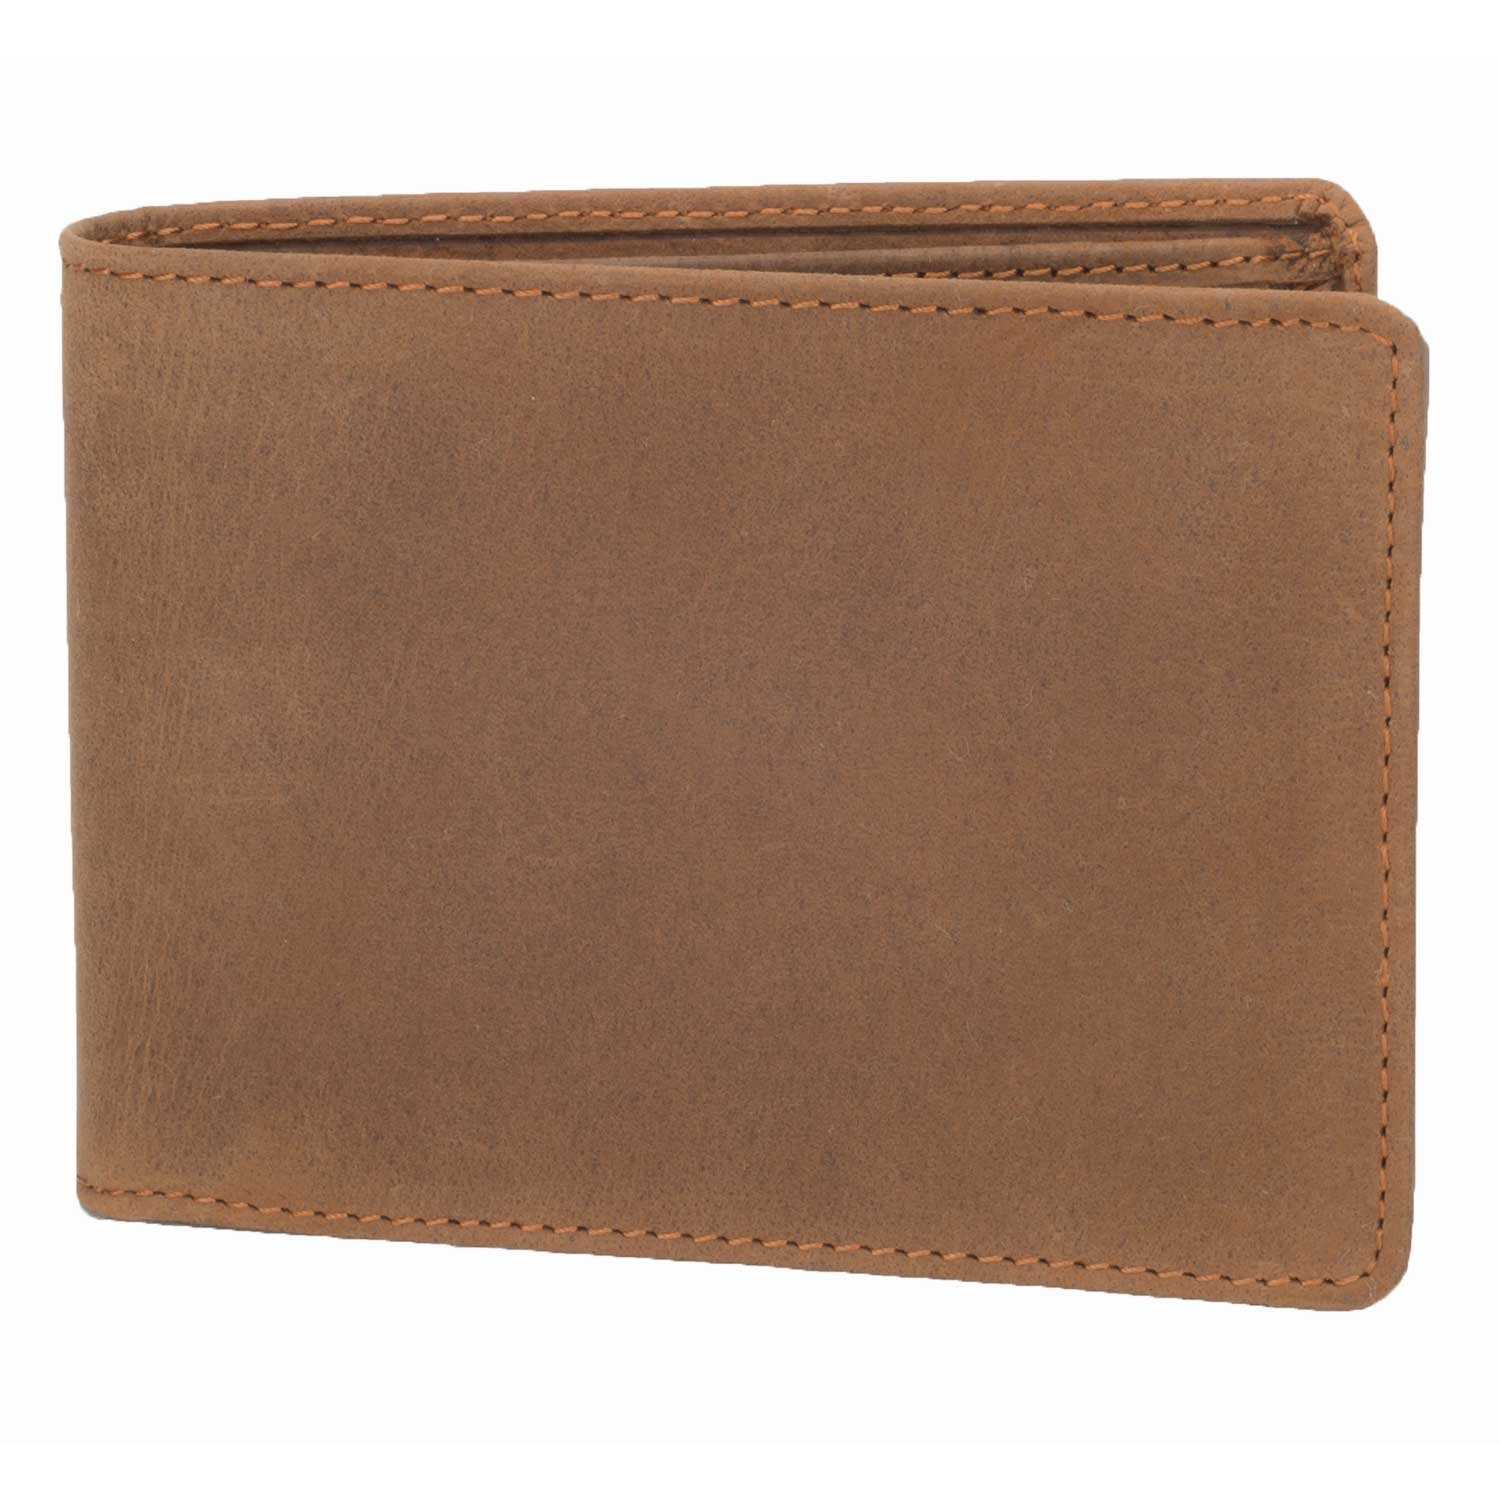 DiLoro Wallets for Men Bifold Flip ID Section Coin Compartment RFID Protection Full Grain Top Quality Vegetable Tanned Leather (Light Hunter Brown) by DiLoro (Image #6)